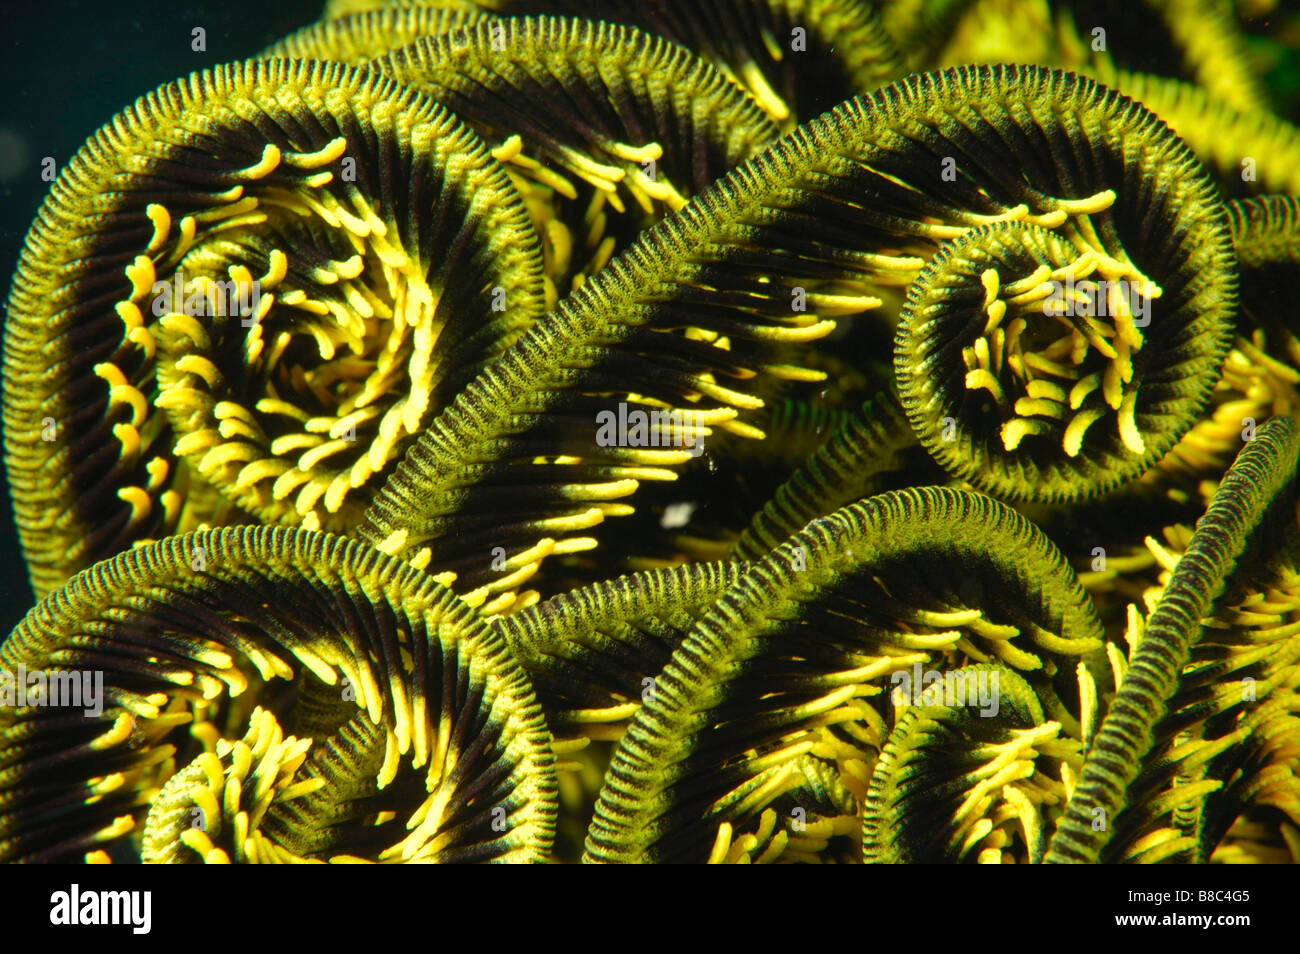 Feather star arms Photo Stock